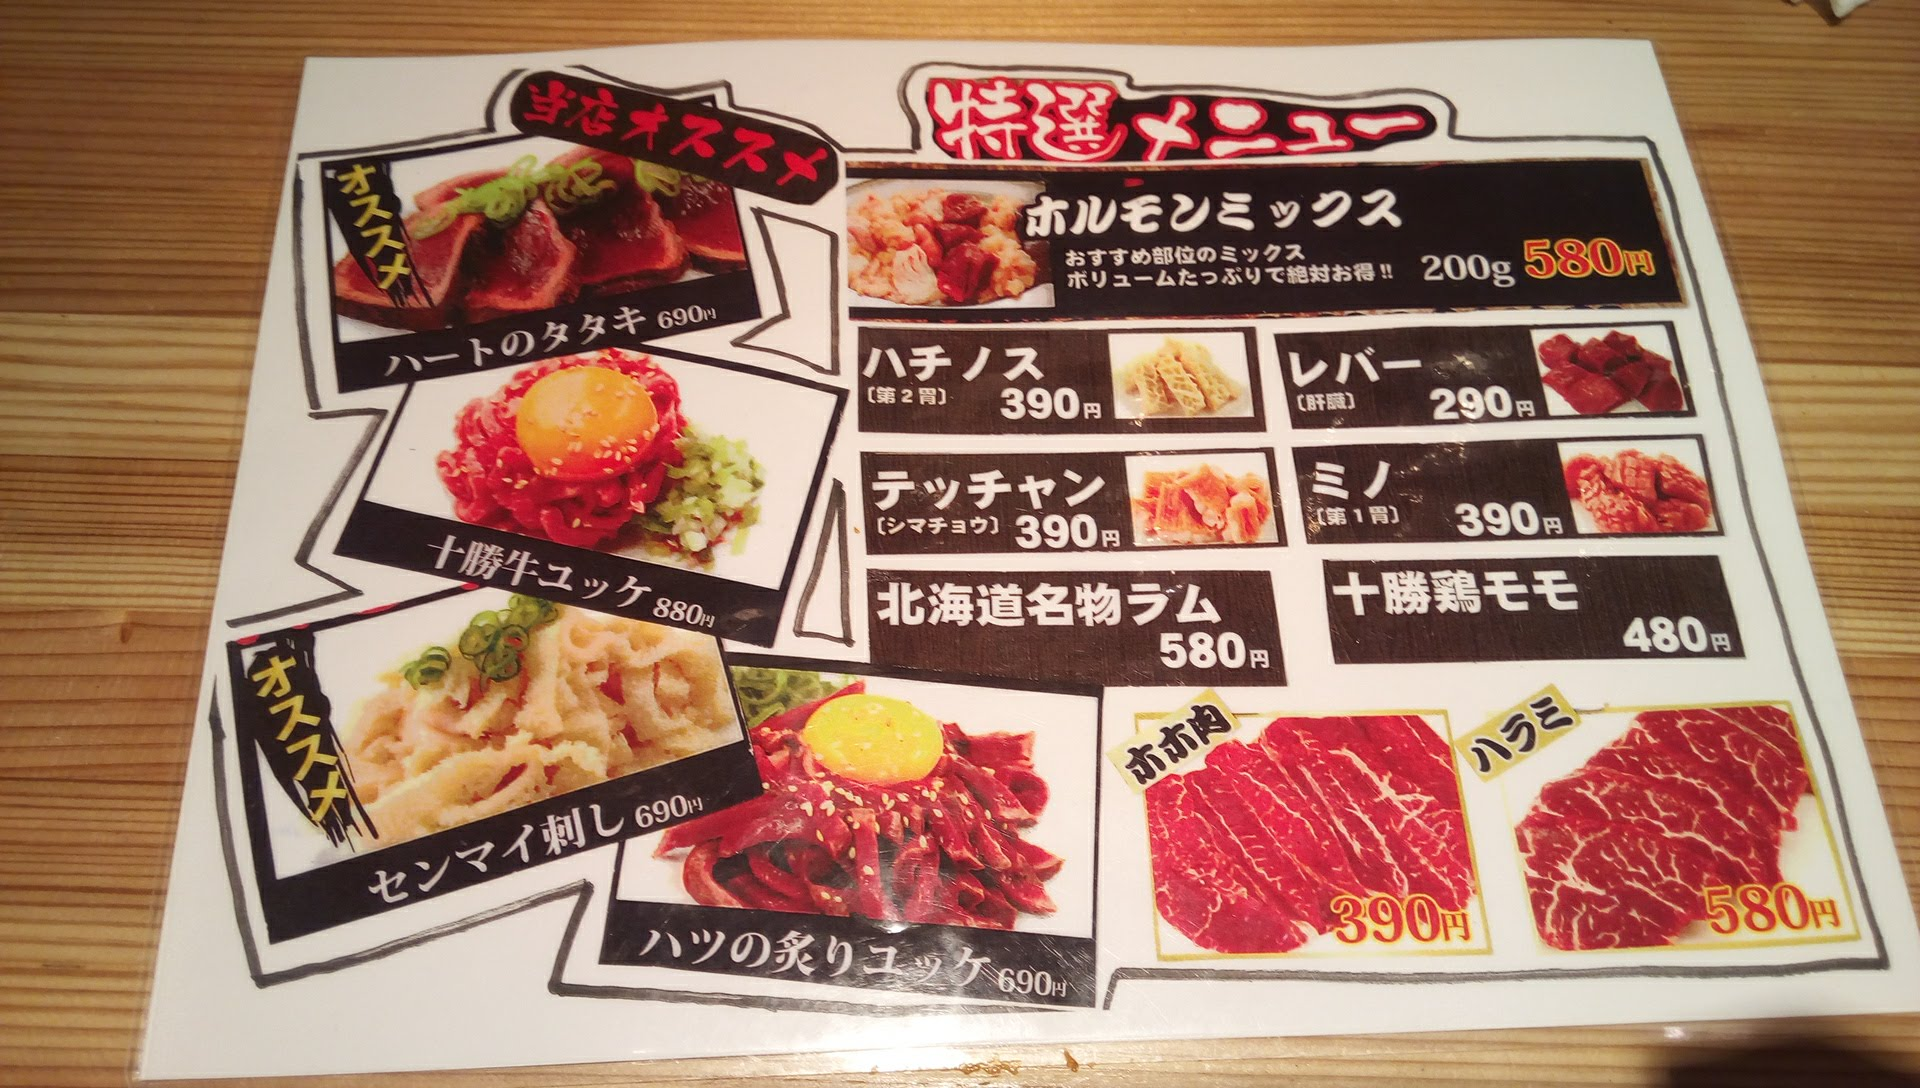 KEMURI food menu 1